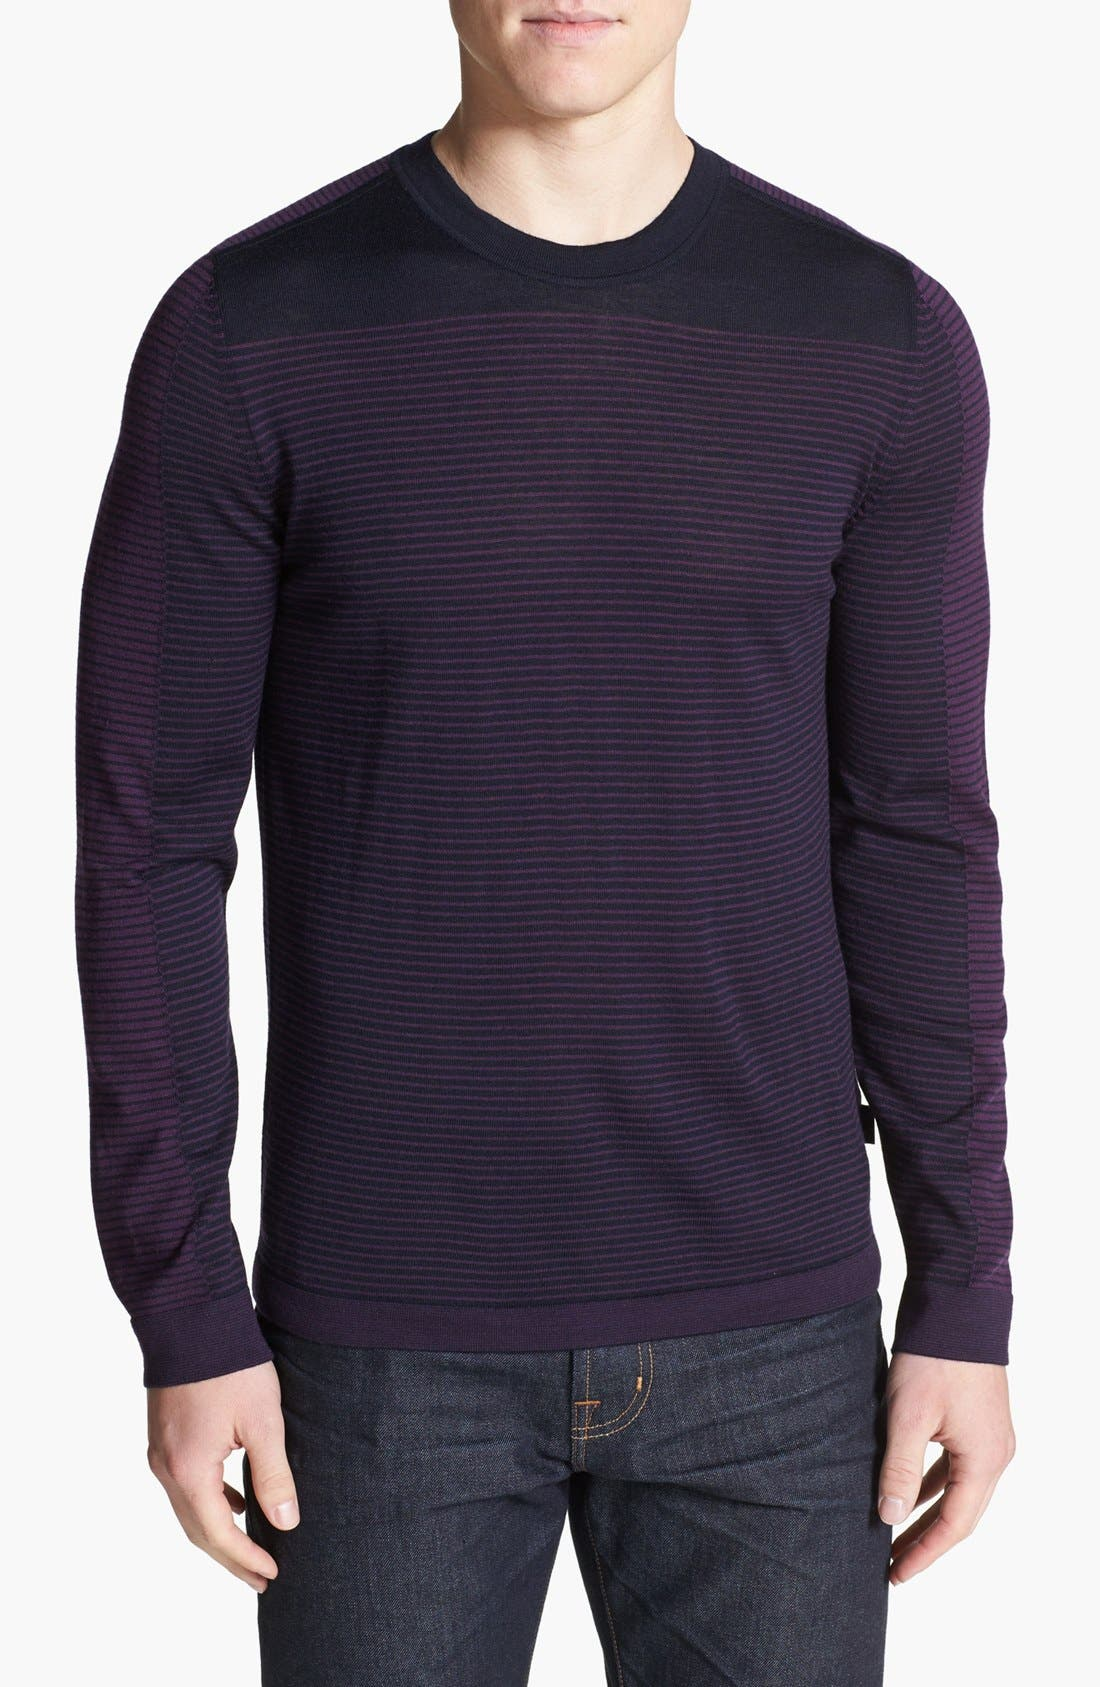 Main Image - BOSS HUGO BOSS 'Merro' Merino Wool Sweater